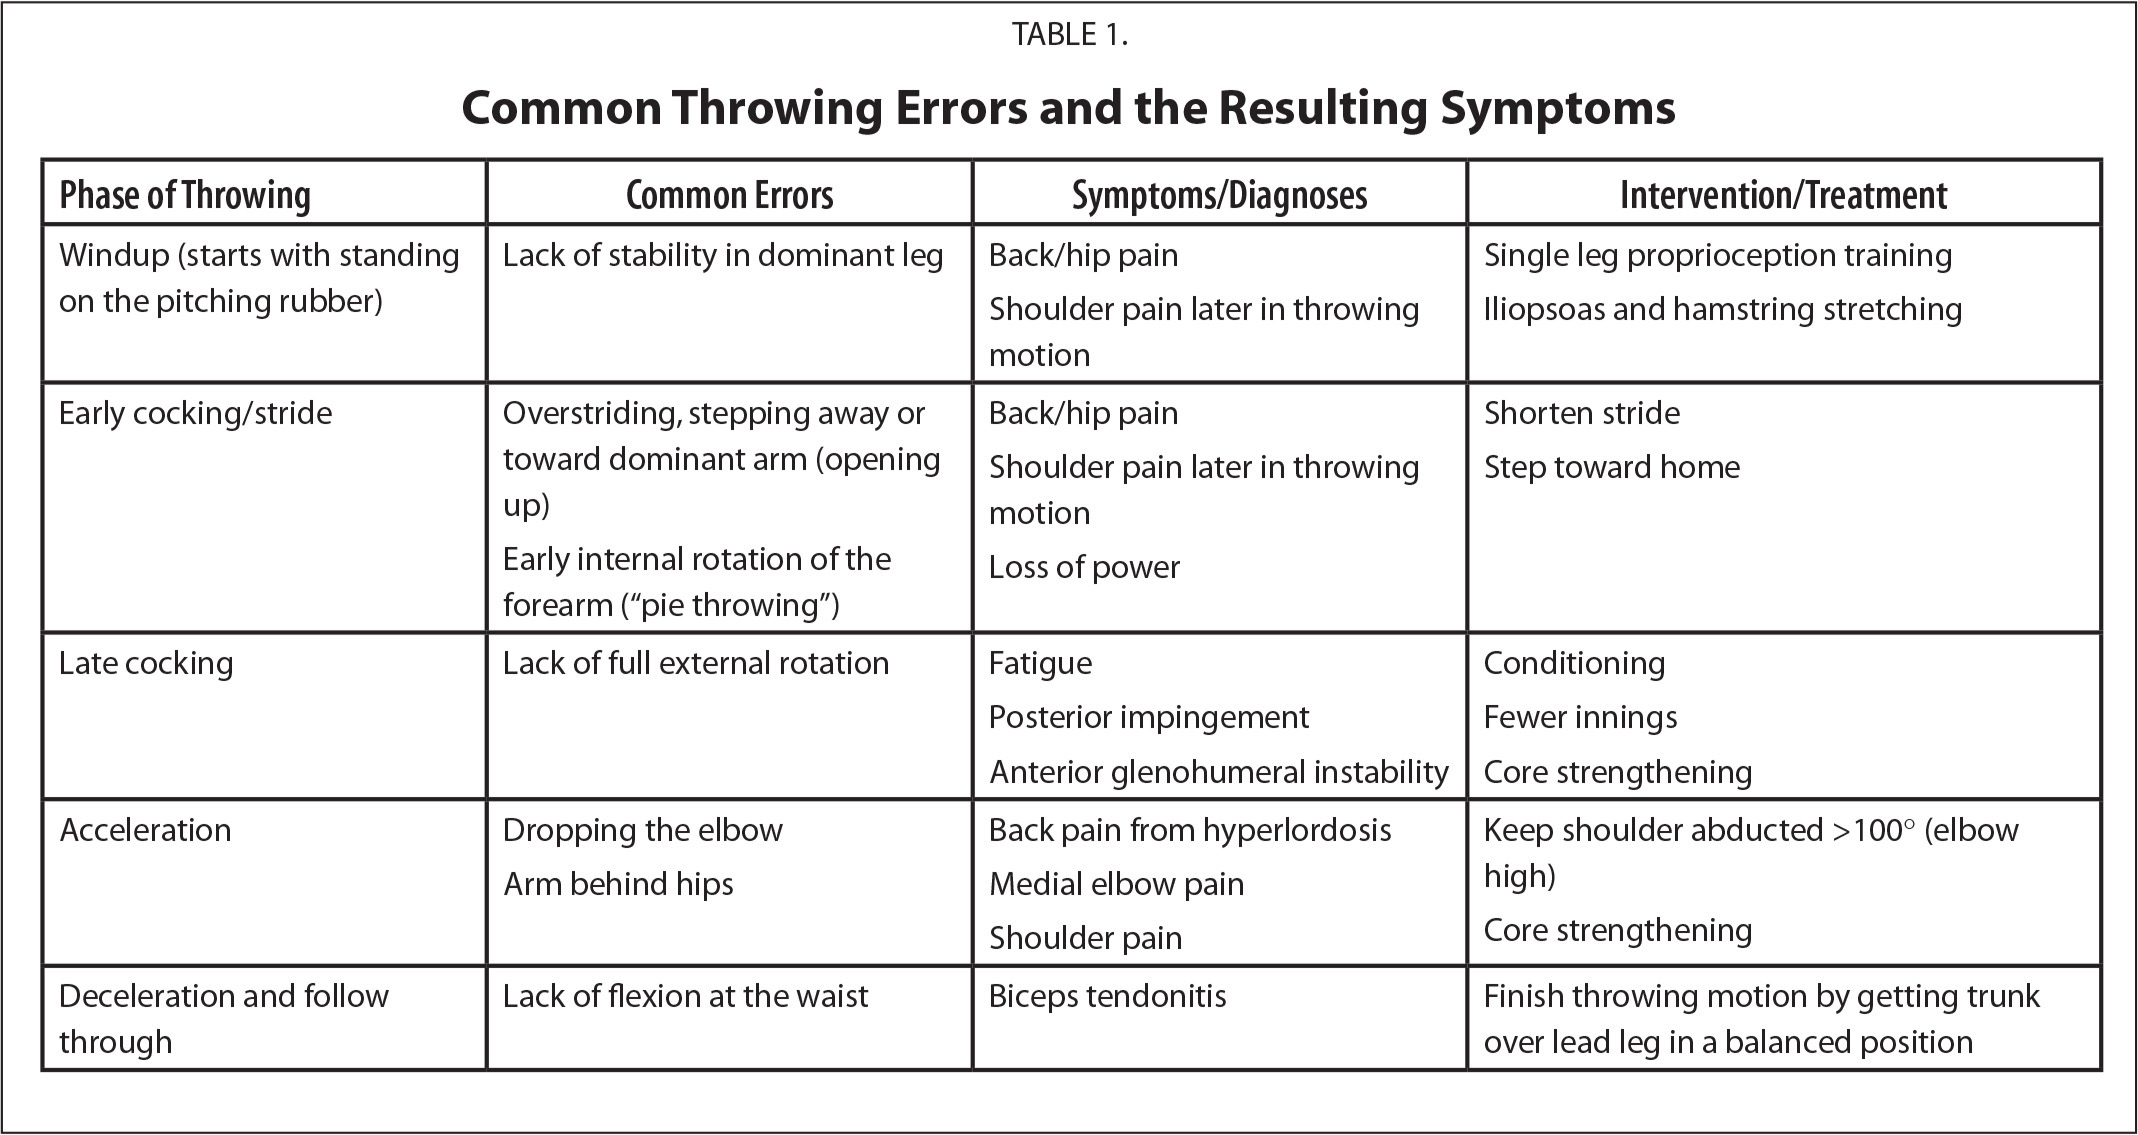 Common Throwing Errors and the Resulting Symptoms